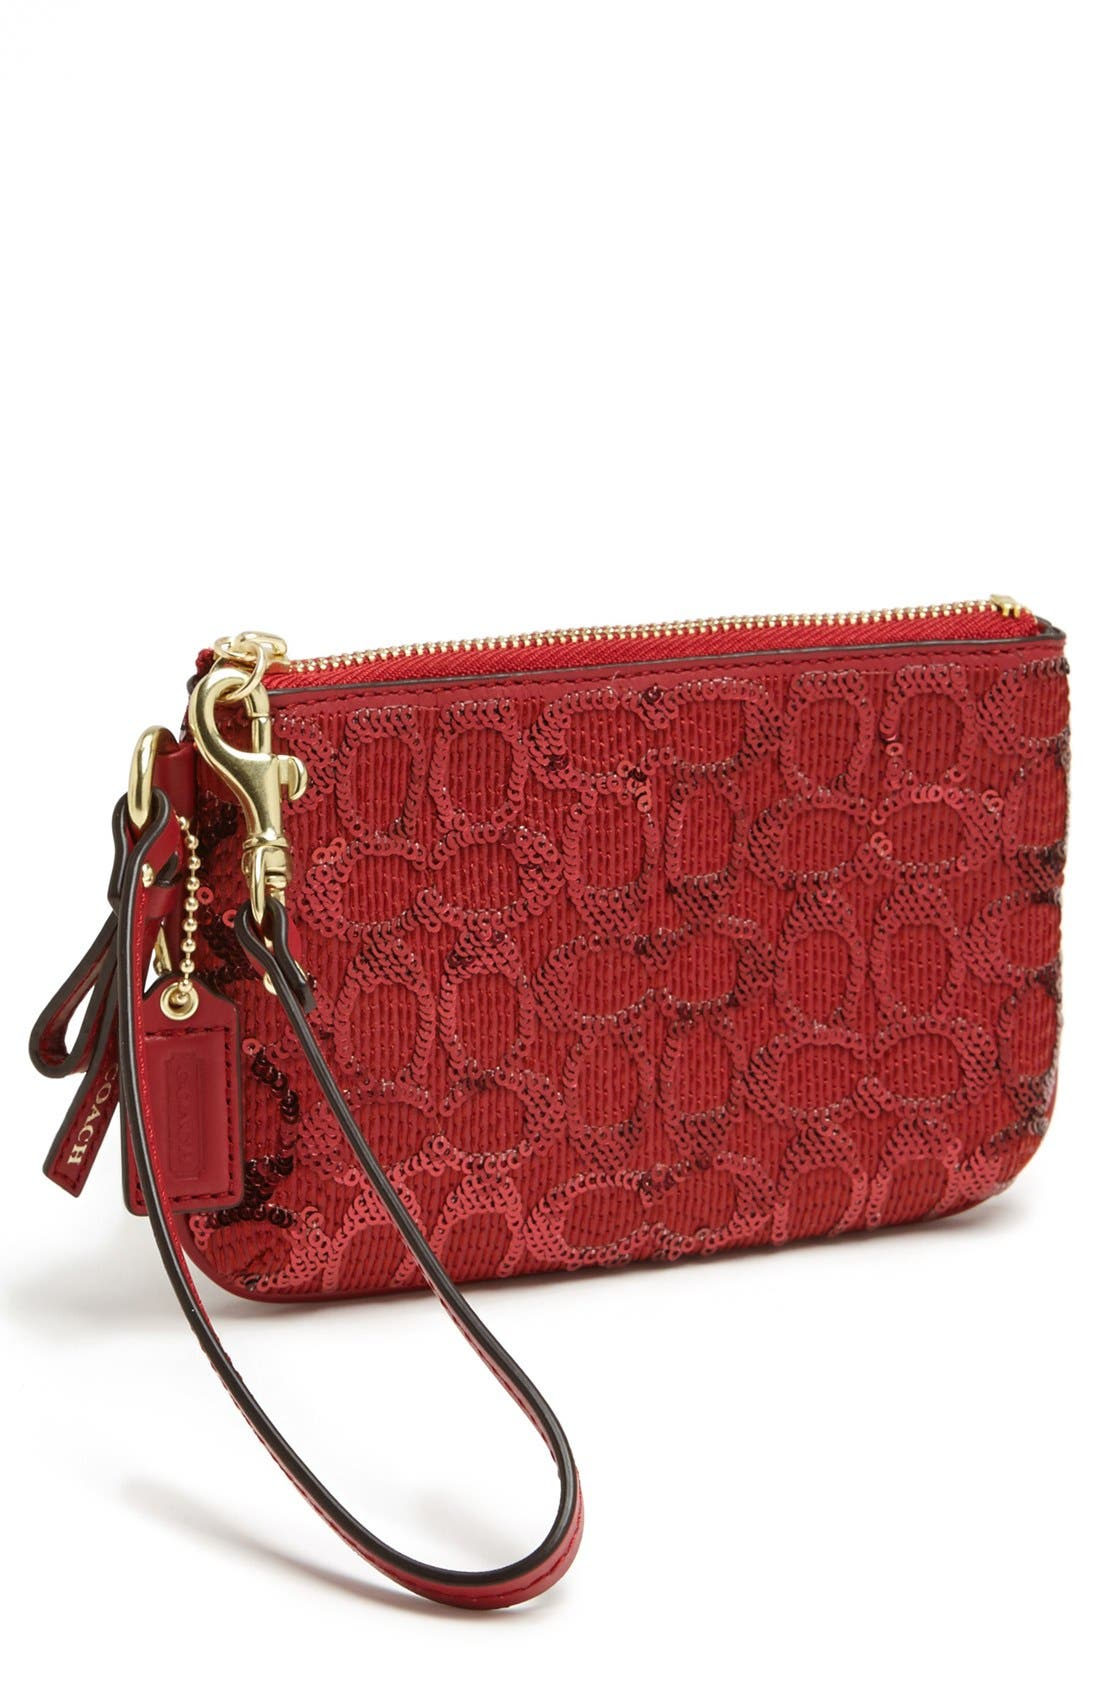 Alternate Image 1 Selected - COACH 'Signature' Sequin Wristlet